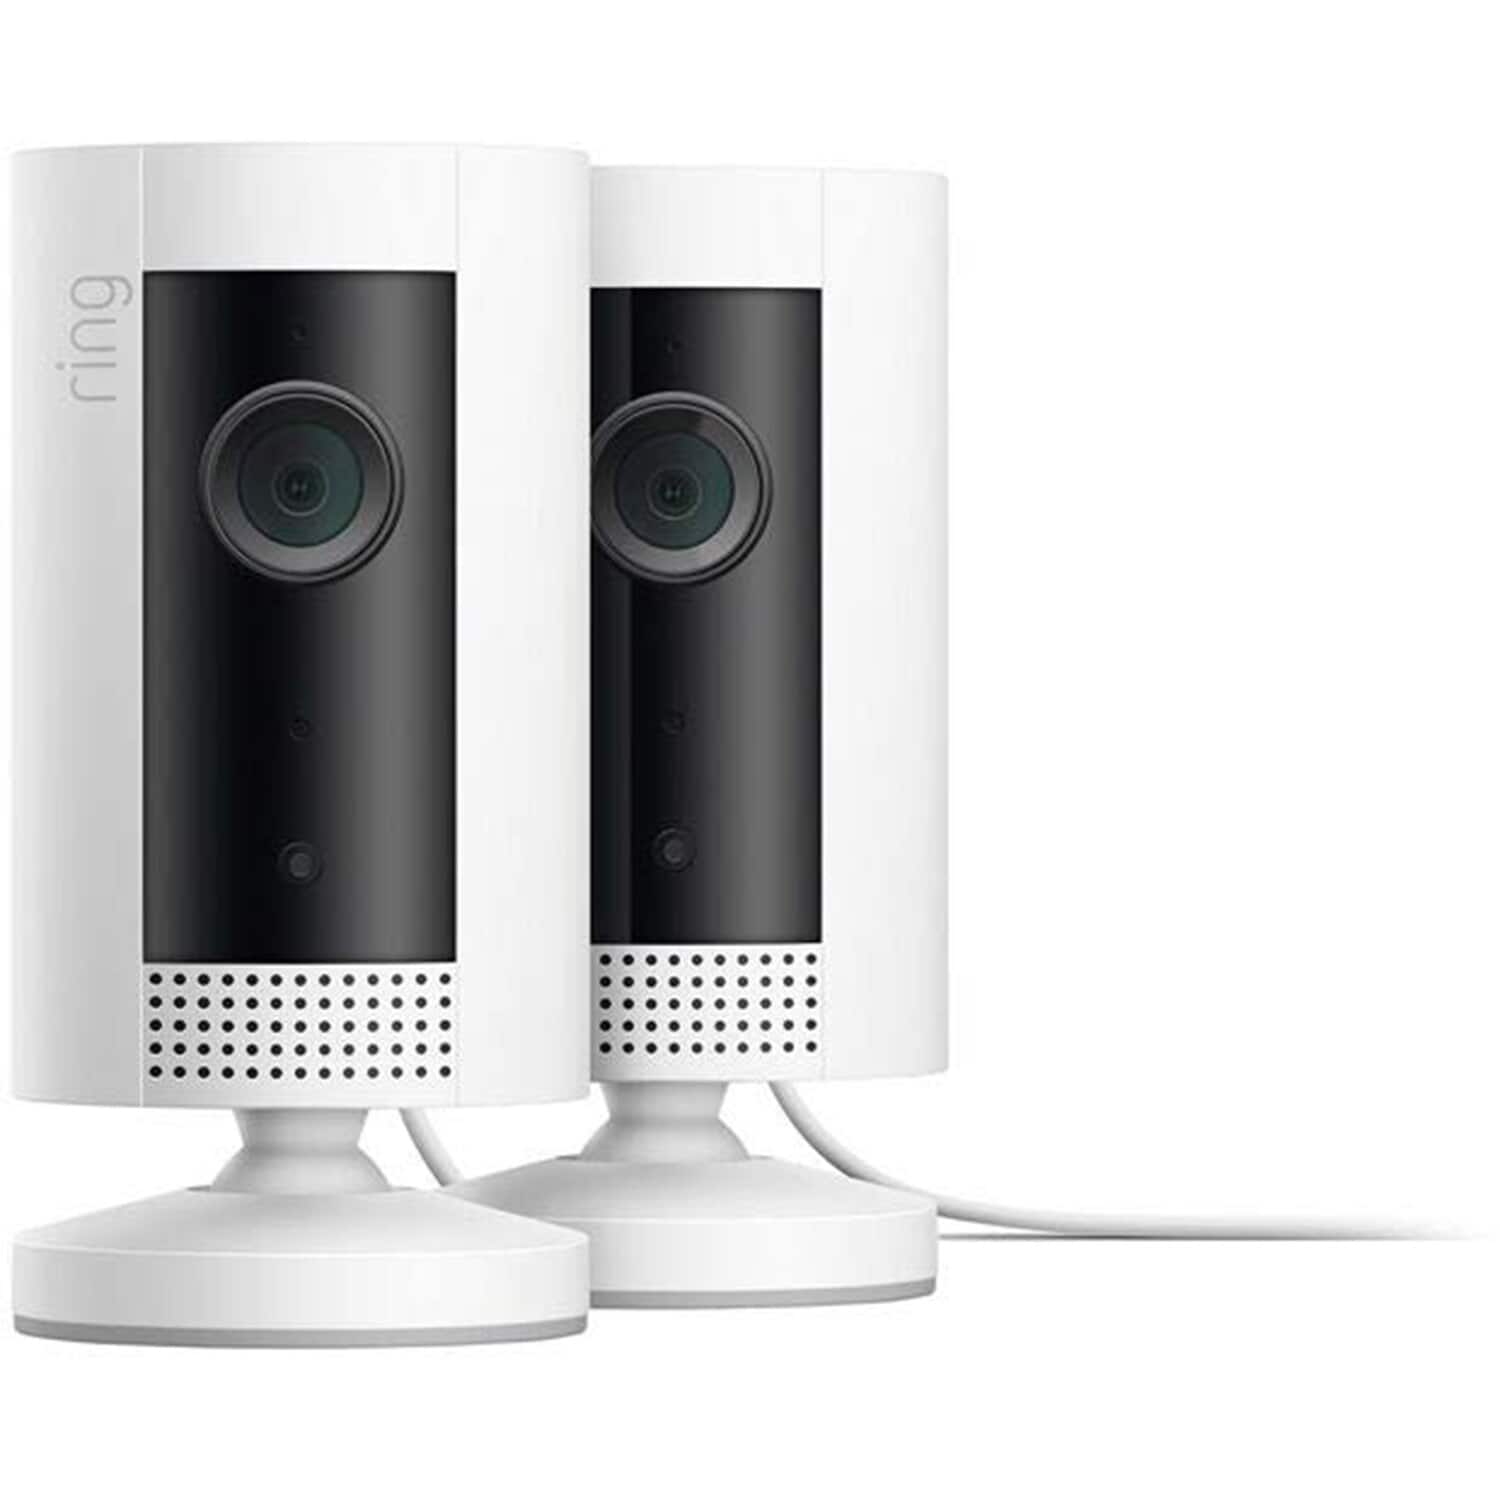 (2-Pack) Ring Indoor Cam Plug-In HD Security Cameras $99 + ($14.85) in Rakuten Points + FS